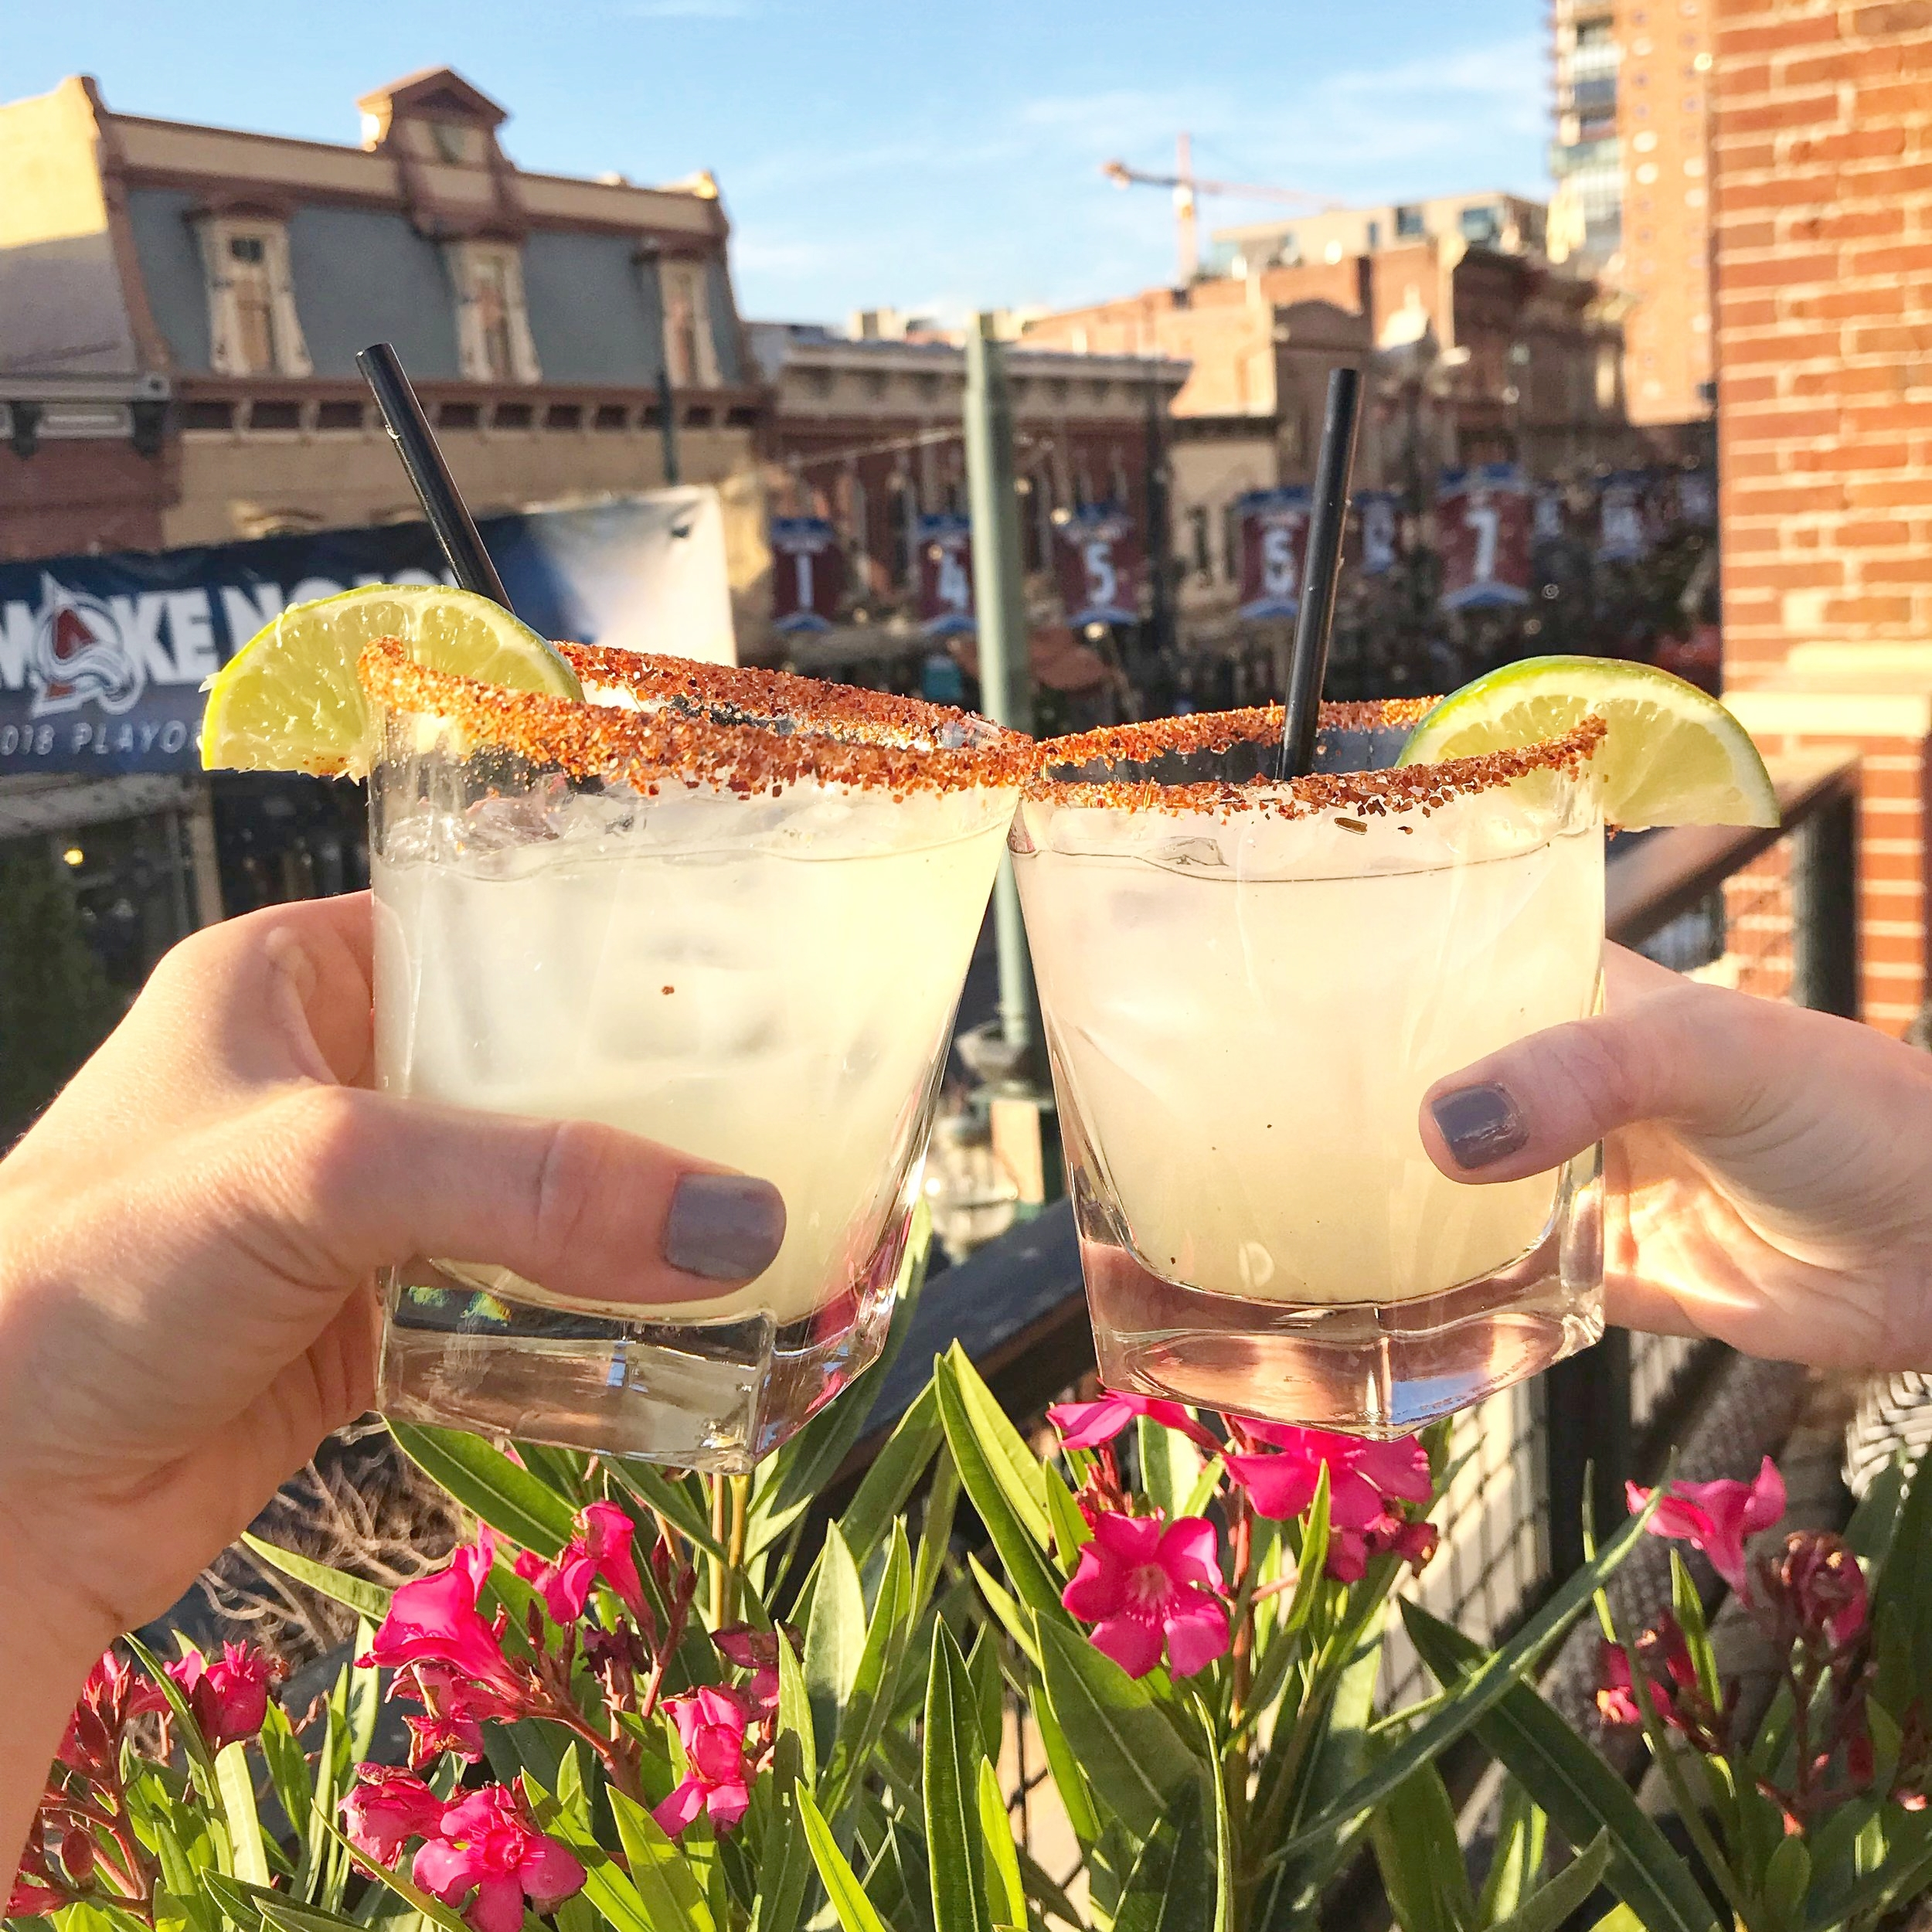 Why we love it: brunch, margs, fun atmosphere  We know this one isn't in Boulder, but we love it, so we're including it! First, it's on the adorable Larimer Street. The rooftop is a really good size. Part of it is covered and perfect for that rooftop vibe but not getting pelted by the sun. There's a spot that is open as well, and it has cute lounge seating and views of Larimer. We really enjoyed the food and margaritas. This rooftop also has its own bar, so you never have to wait long for drinks. It all around just has a great vibe. Plus, they have a delicious brunch that includes Guava and Mango Mimosas!